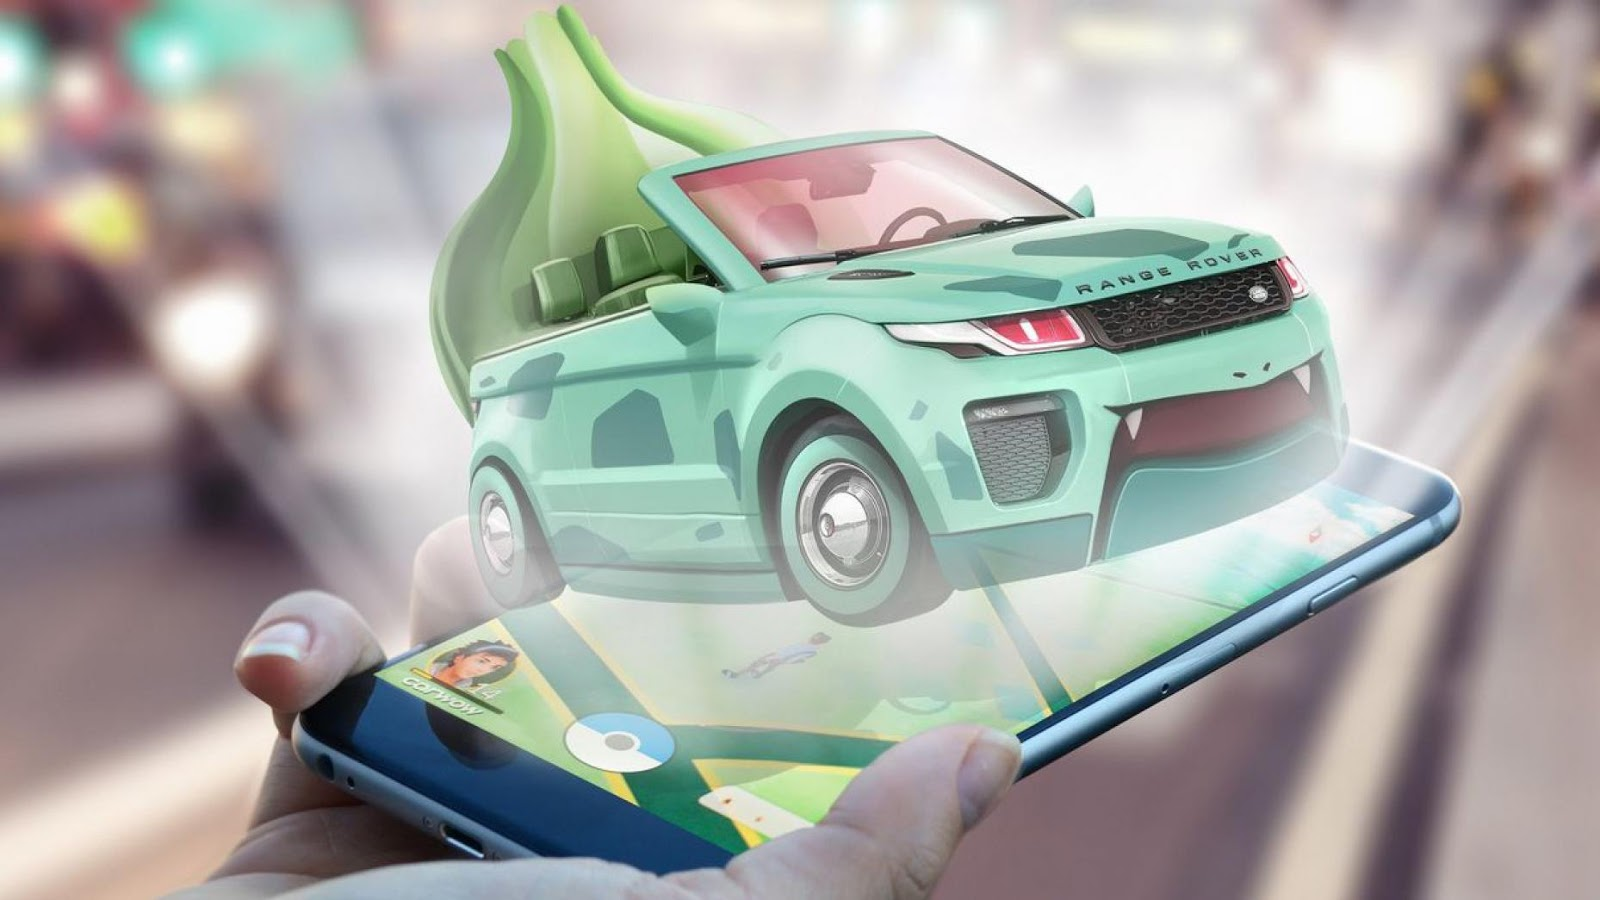 Bulbasaur – Land Rover Evoque Convertible